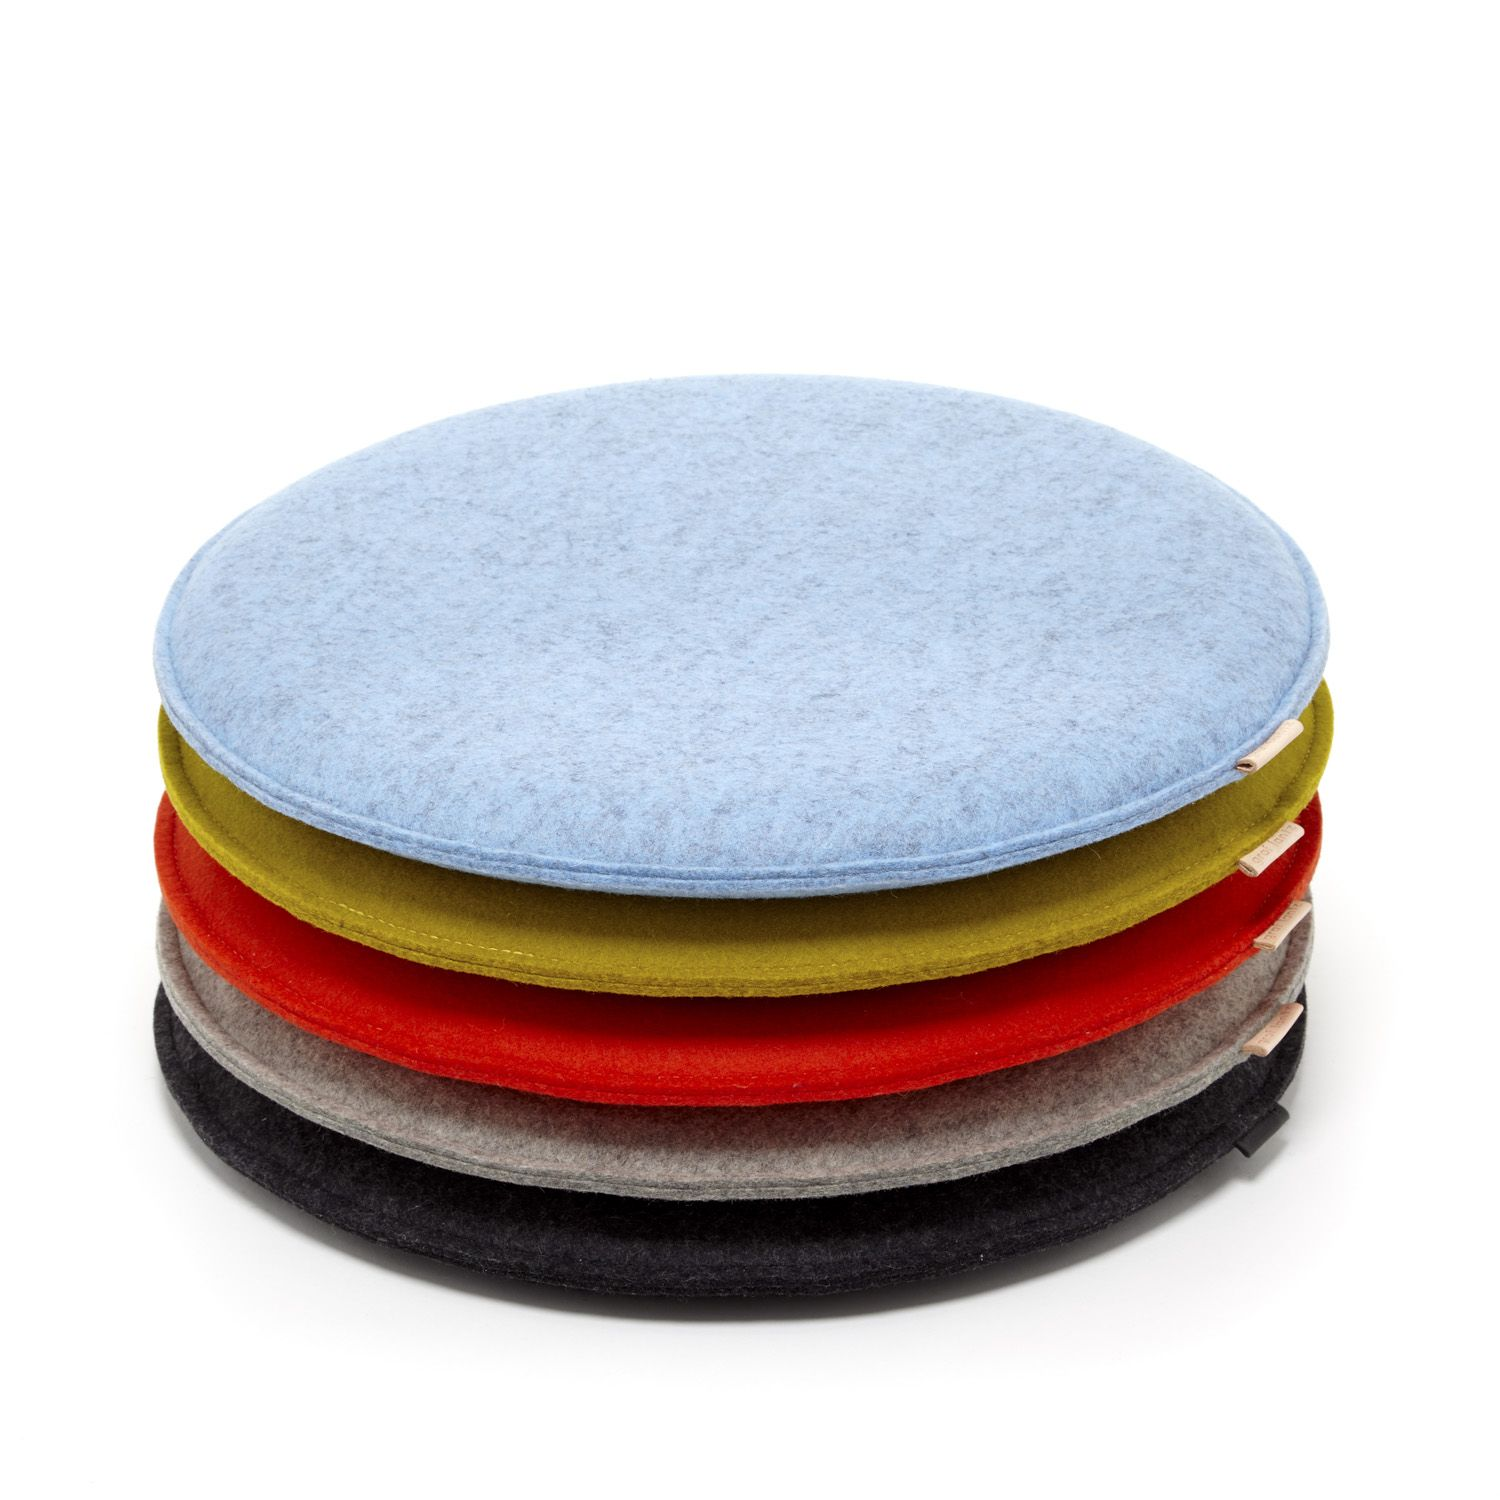 Endearing Zabuton Round Wool Felt Seat Pad In Round Seat Cushions